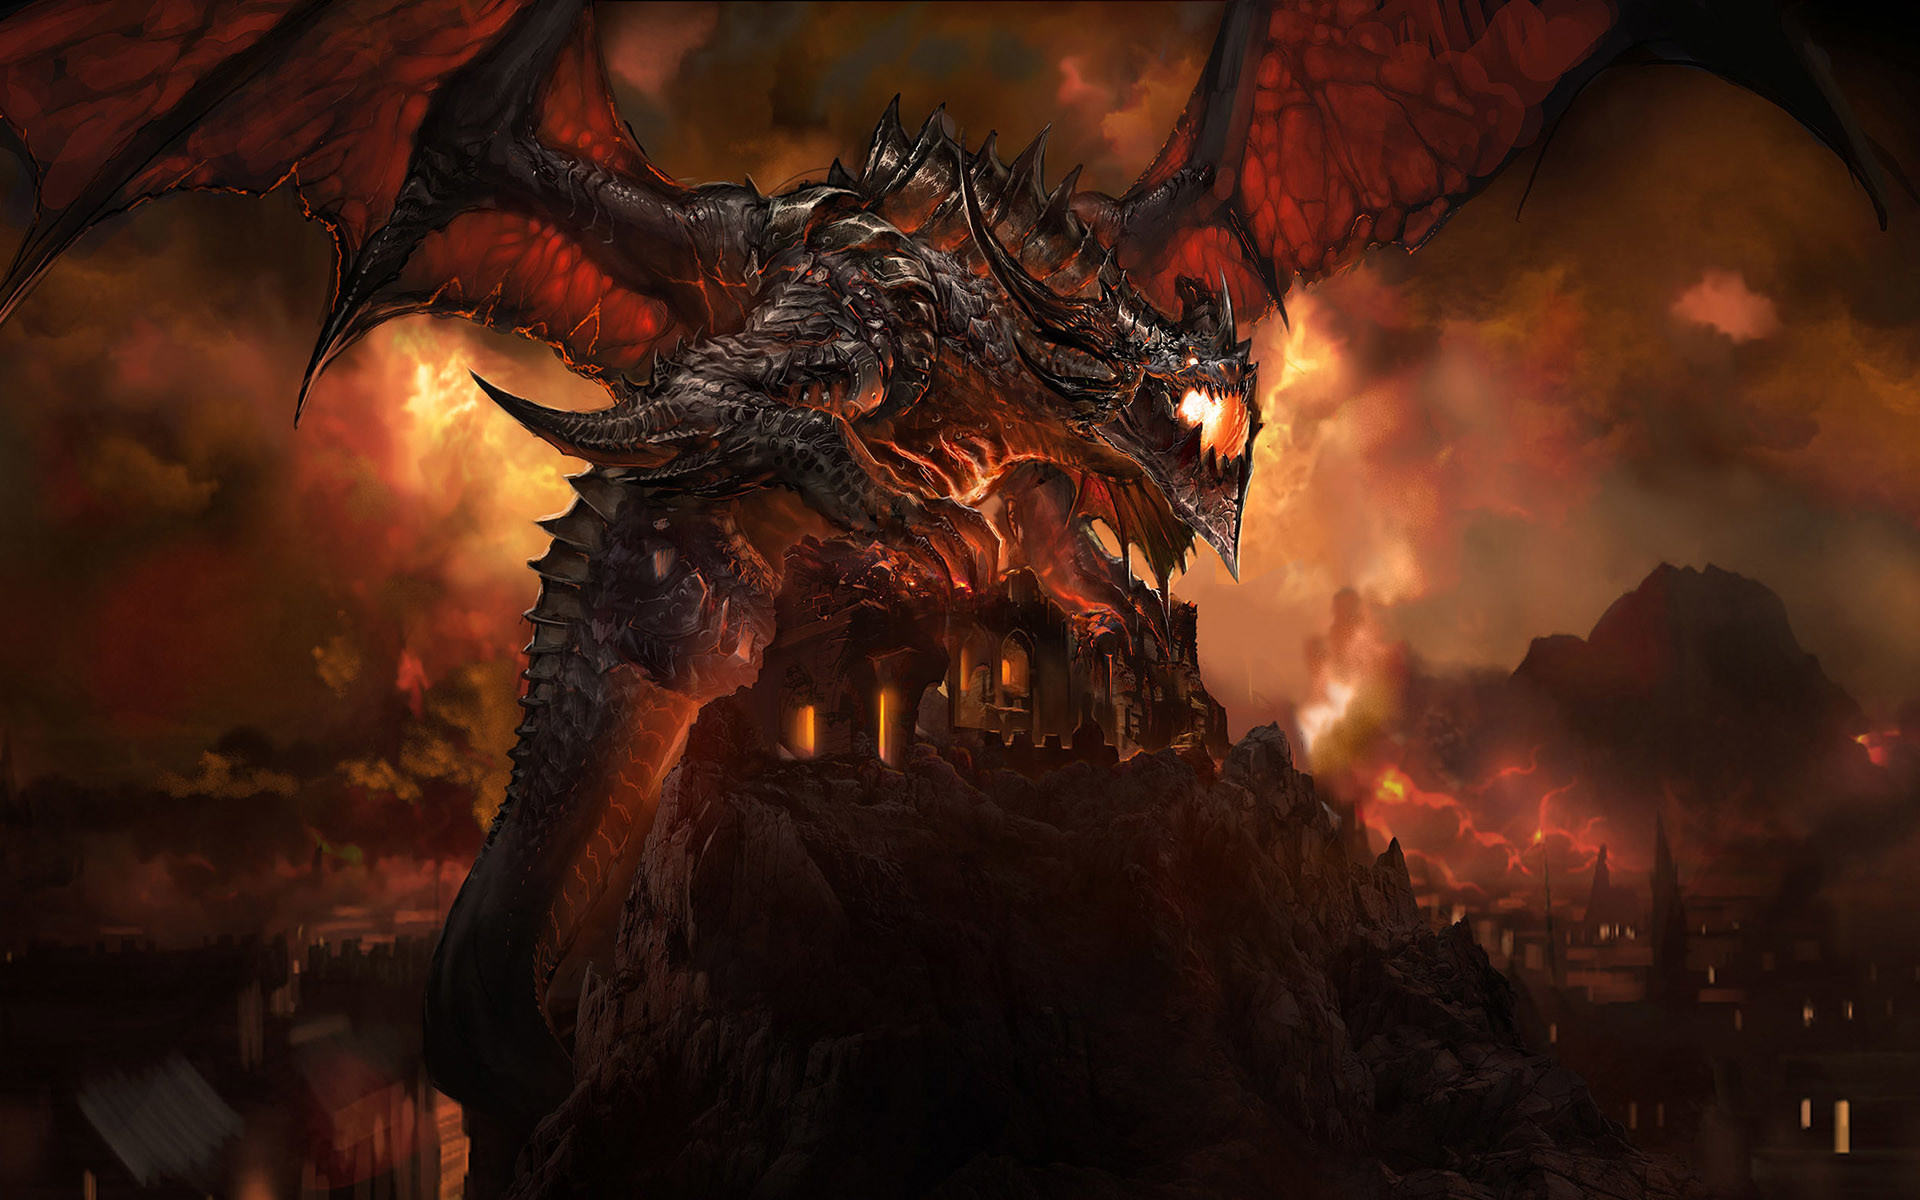 1920x1200 Video Game World Of Warcraft Dragon Sky Fire Deathwing Wallpaper